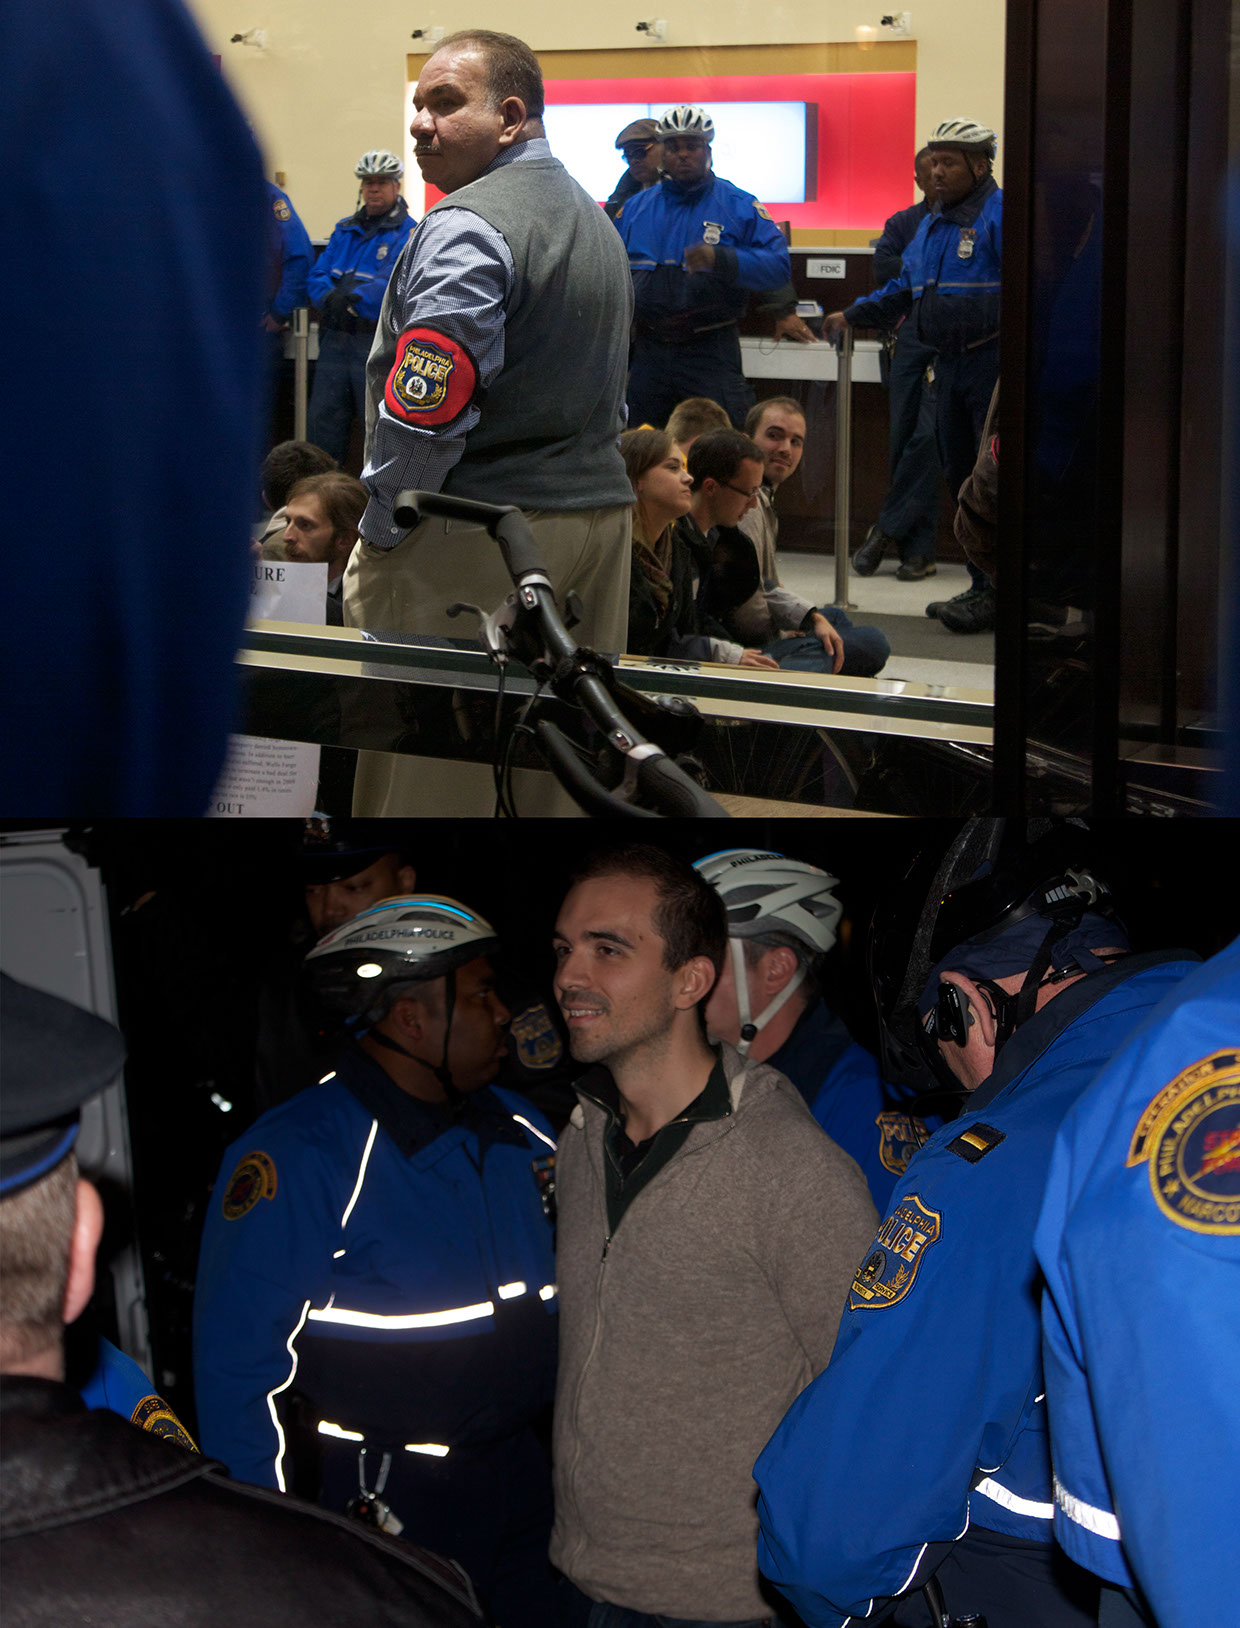 Images from arrest after mock foreclosure of a bank.